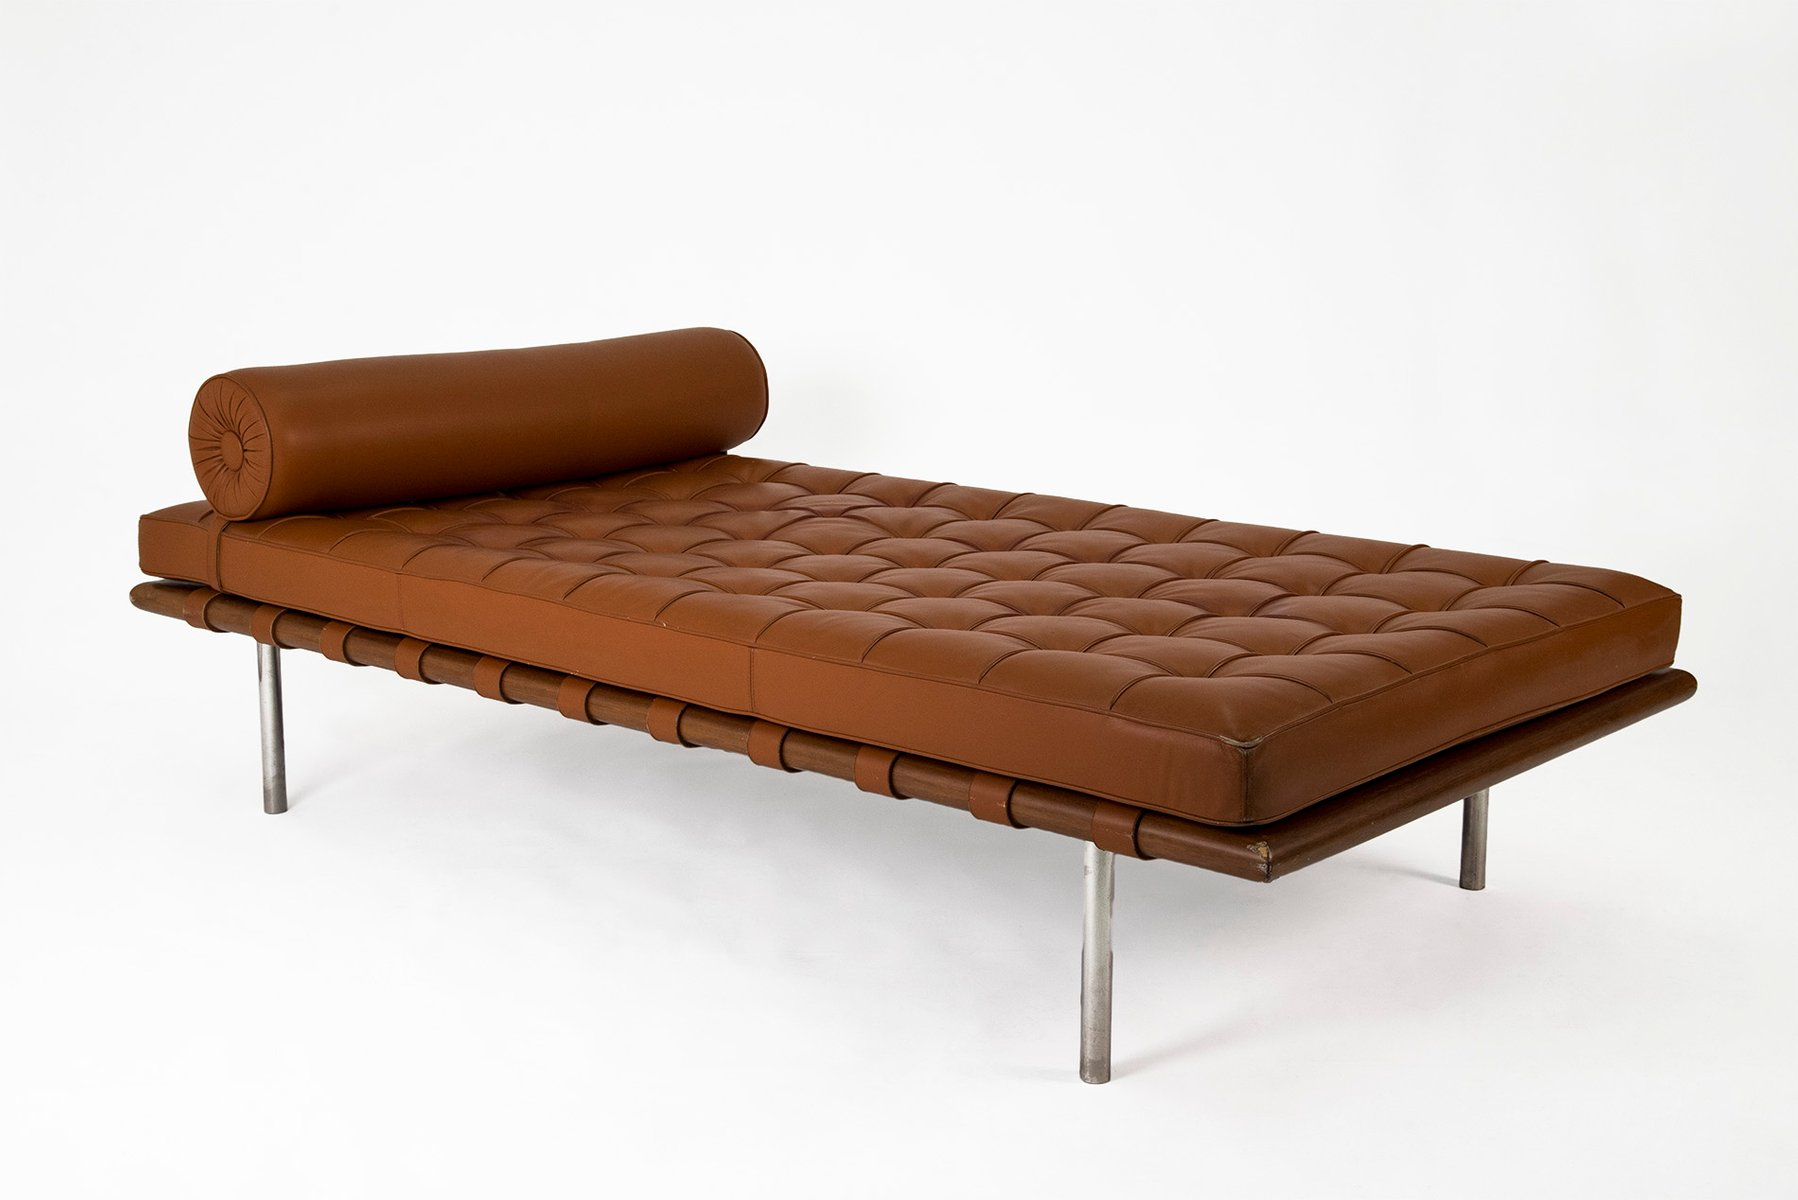 mies van der rohe sofa rosewood and leather barcelona daybed by ludwig mies van der rohe thesofa. Black Bedroom Furniture Sets. Home Design Ideas